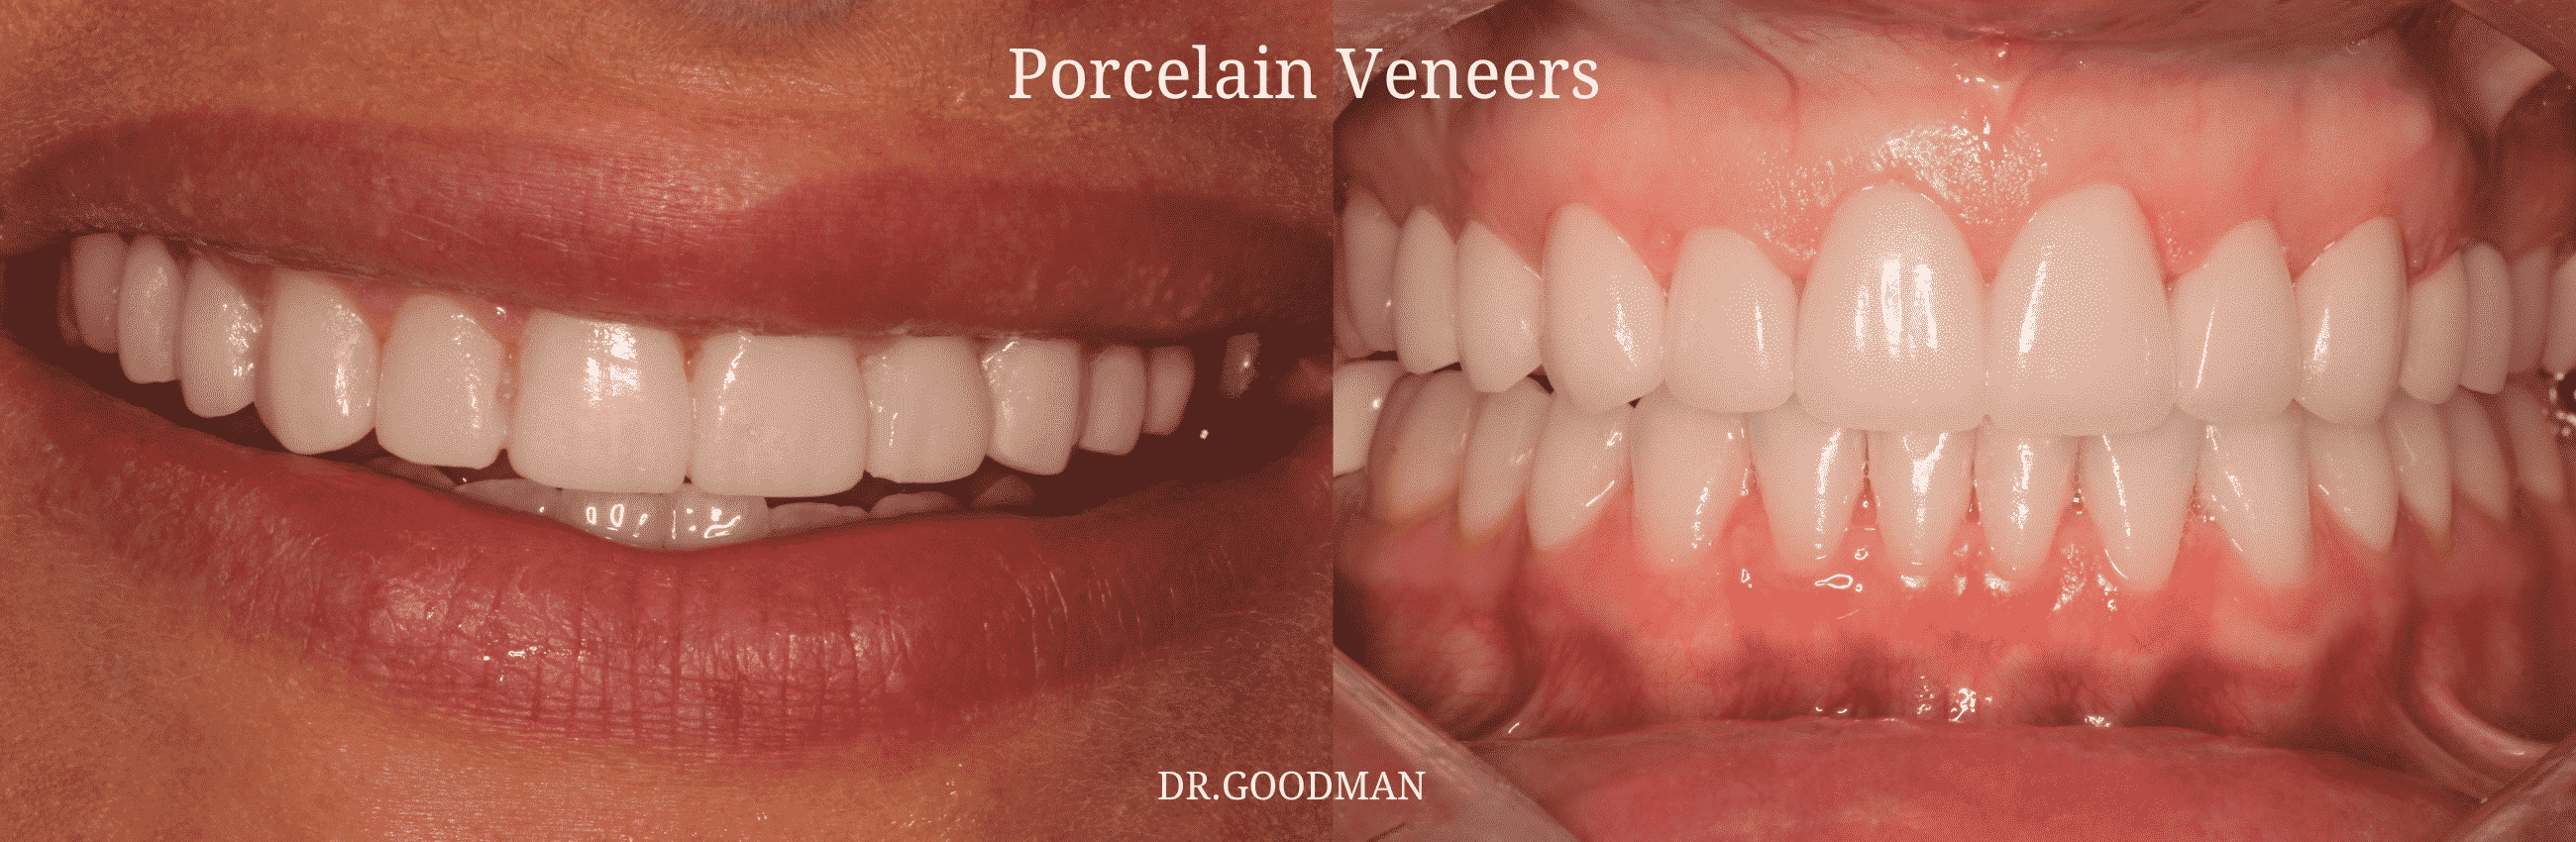 goodman porcelain veneers